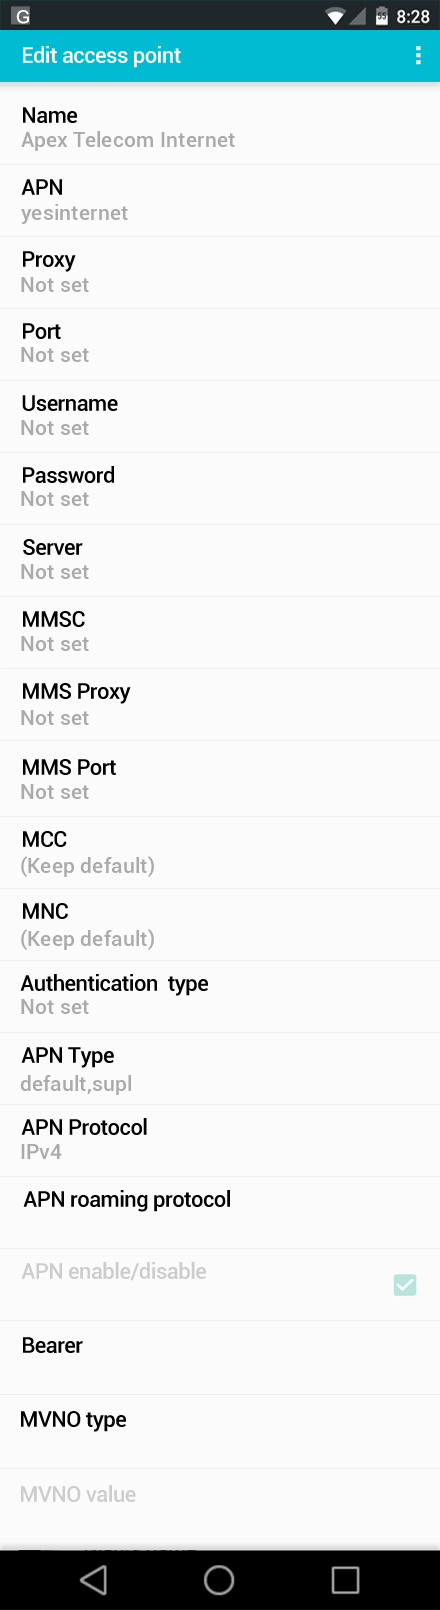 Apex Telecom Internet APN settings for Android screenshot